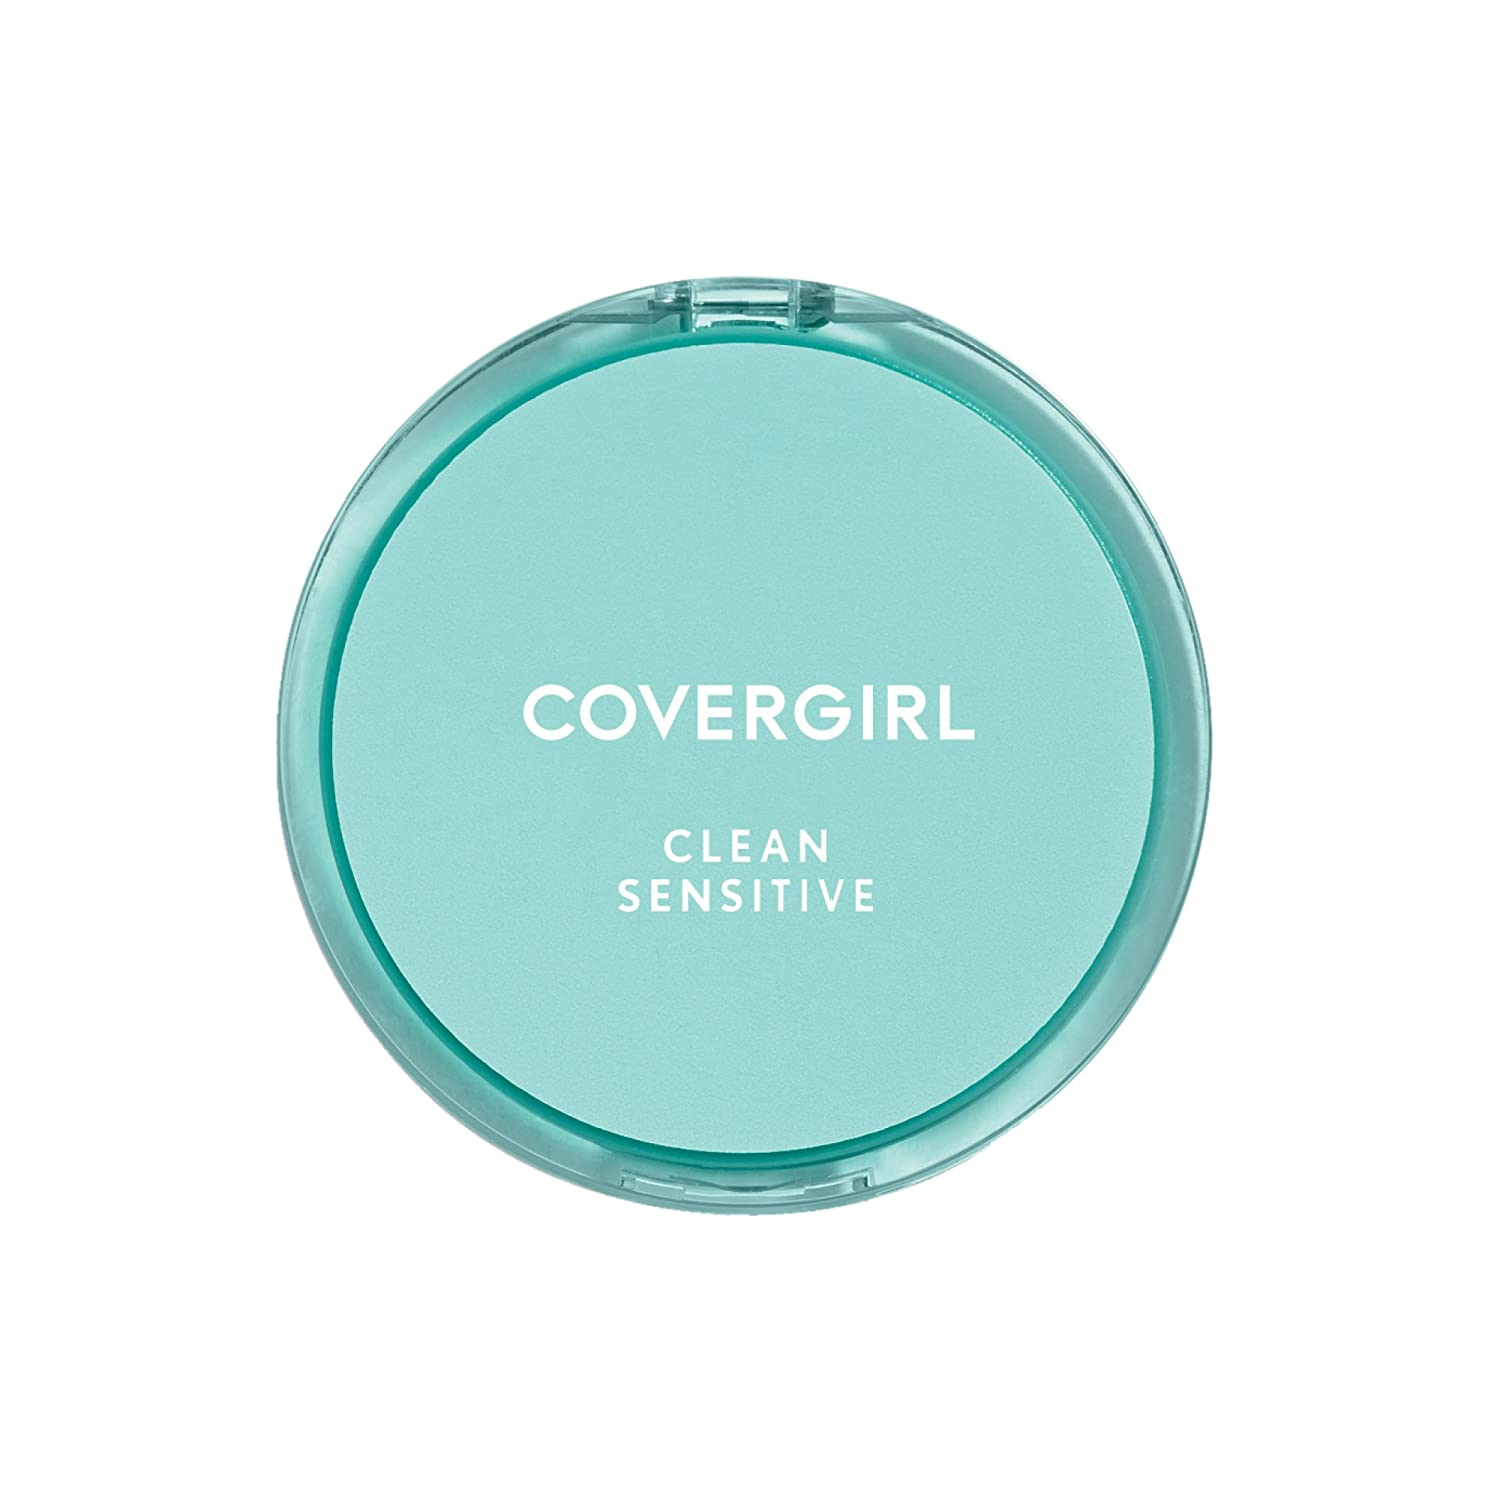 COVERGIRL - Clean Sensitive Pressed Powder - Packaging May Vary Coty 1002270012218